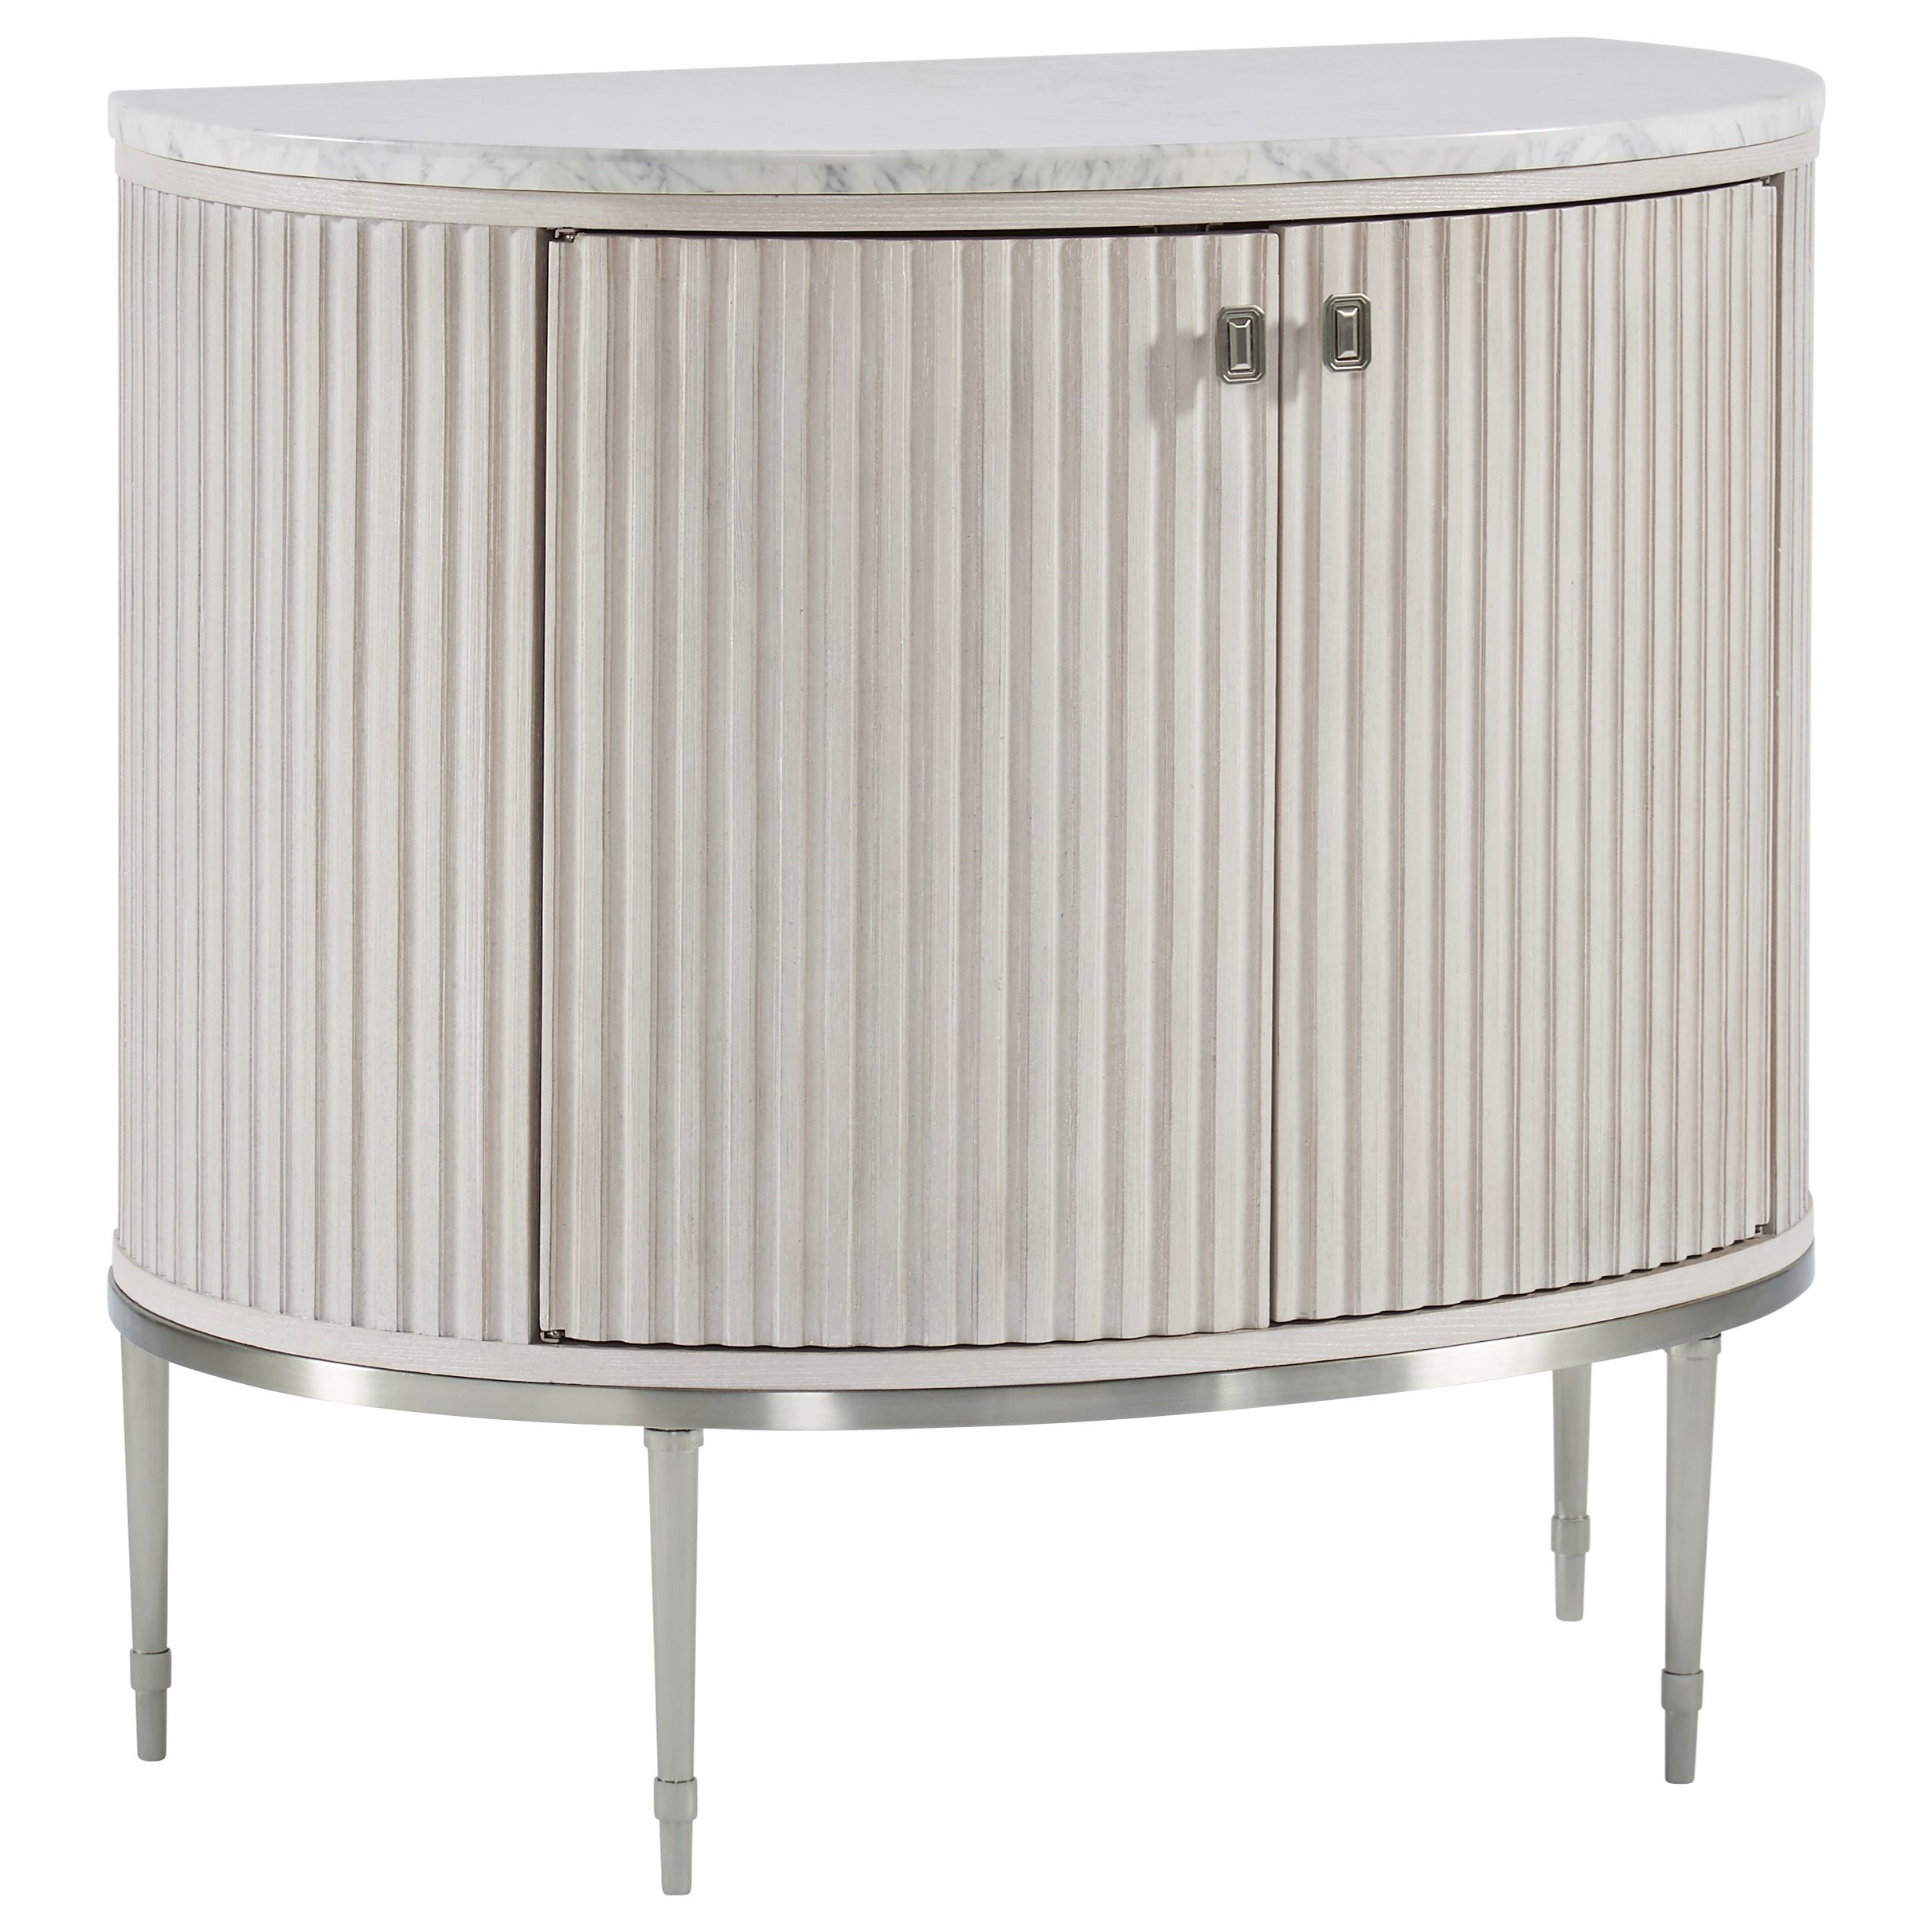 La Scala Door Chest by A.R.T. Furniture Inc at Hudson's Furniture